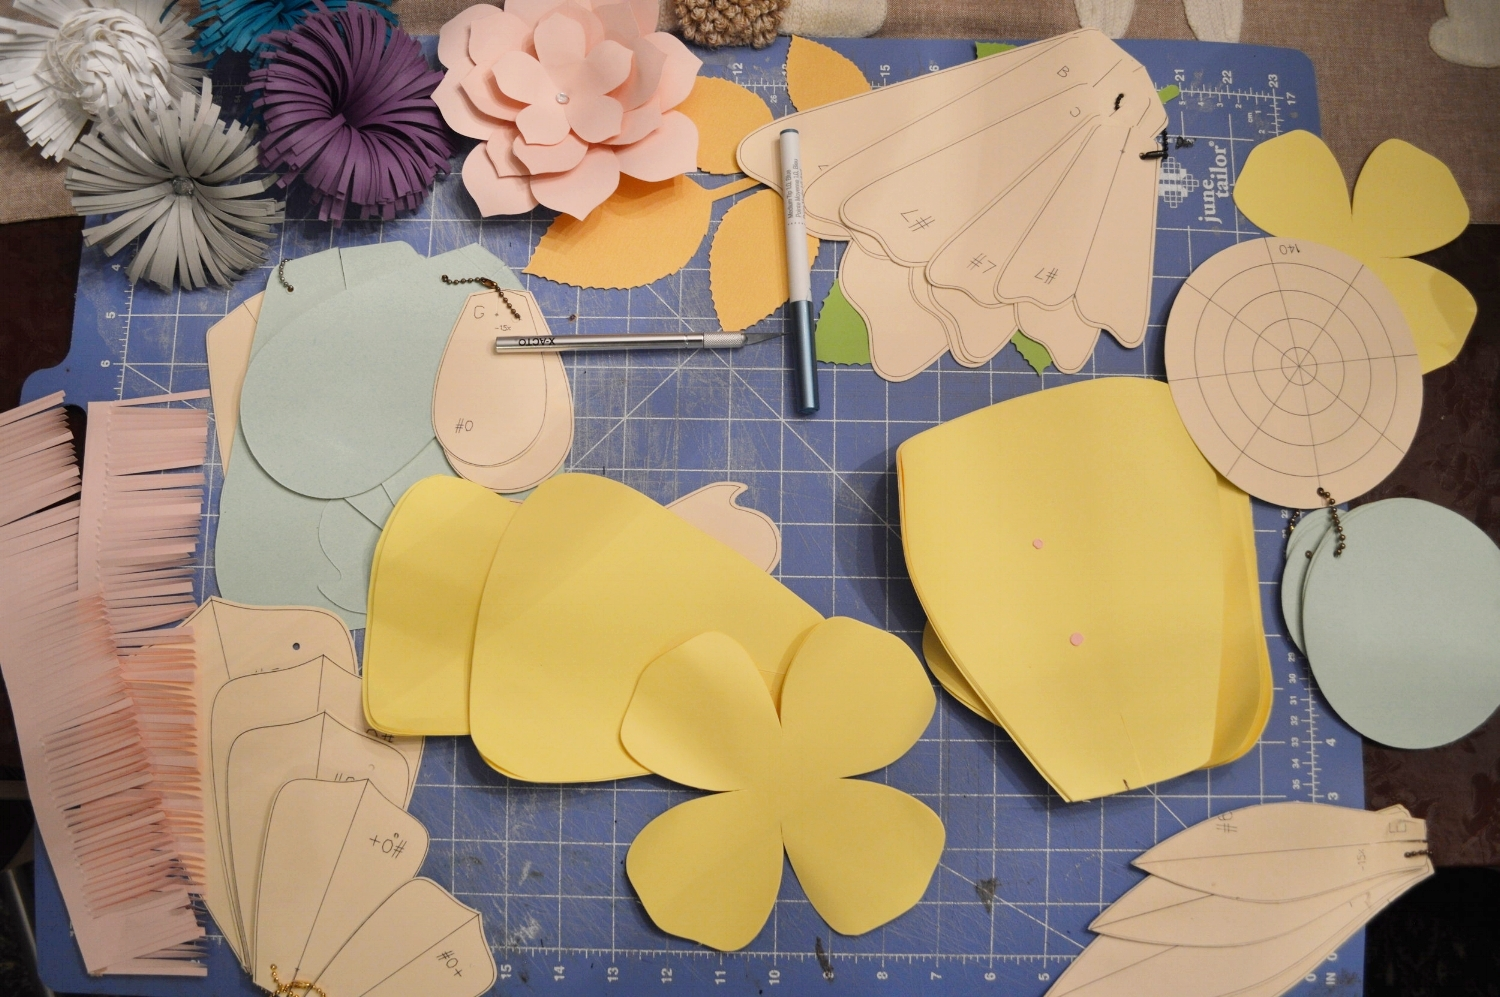 Tina designs her own flower patterns and shapes.